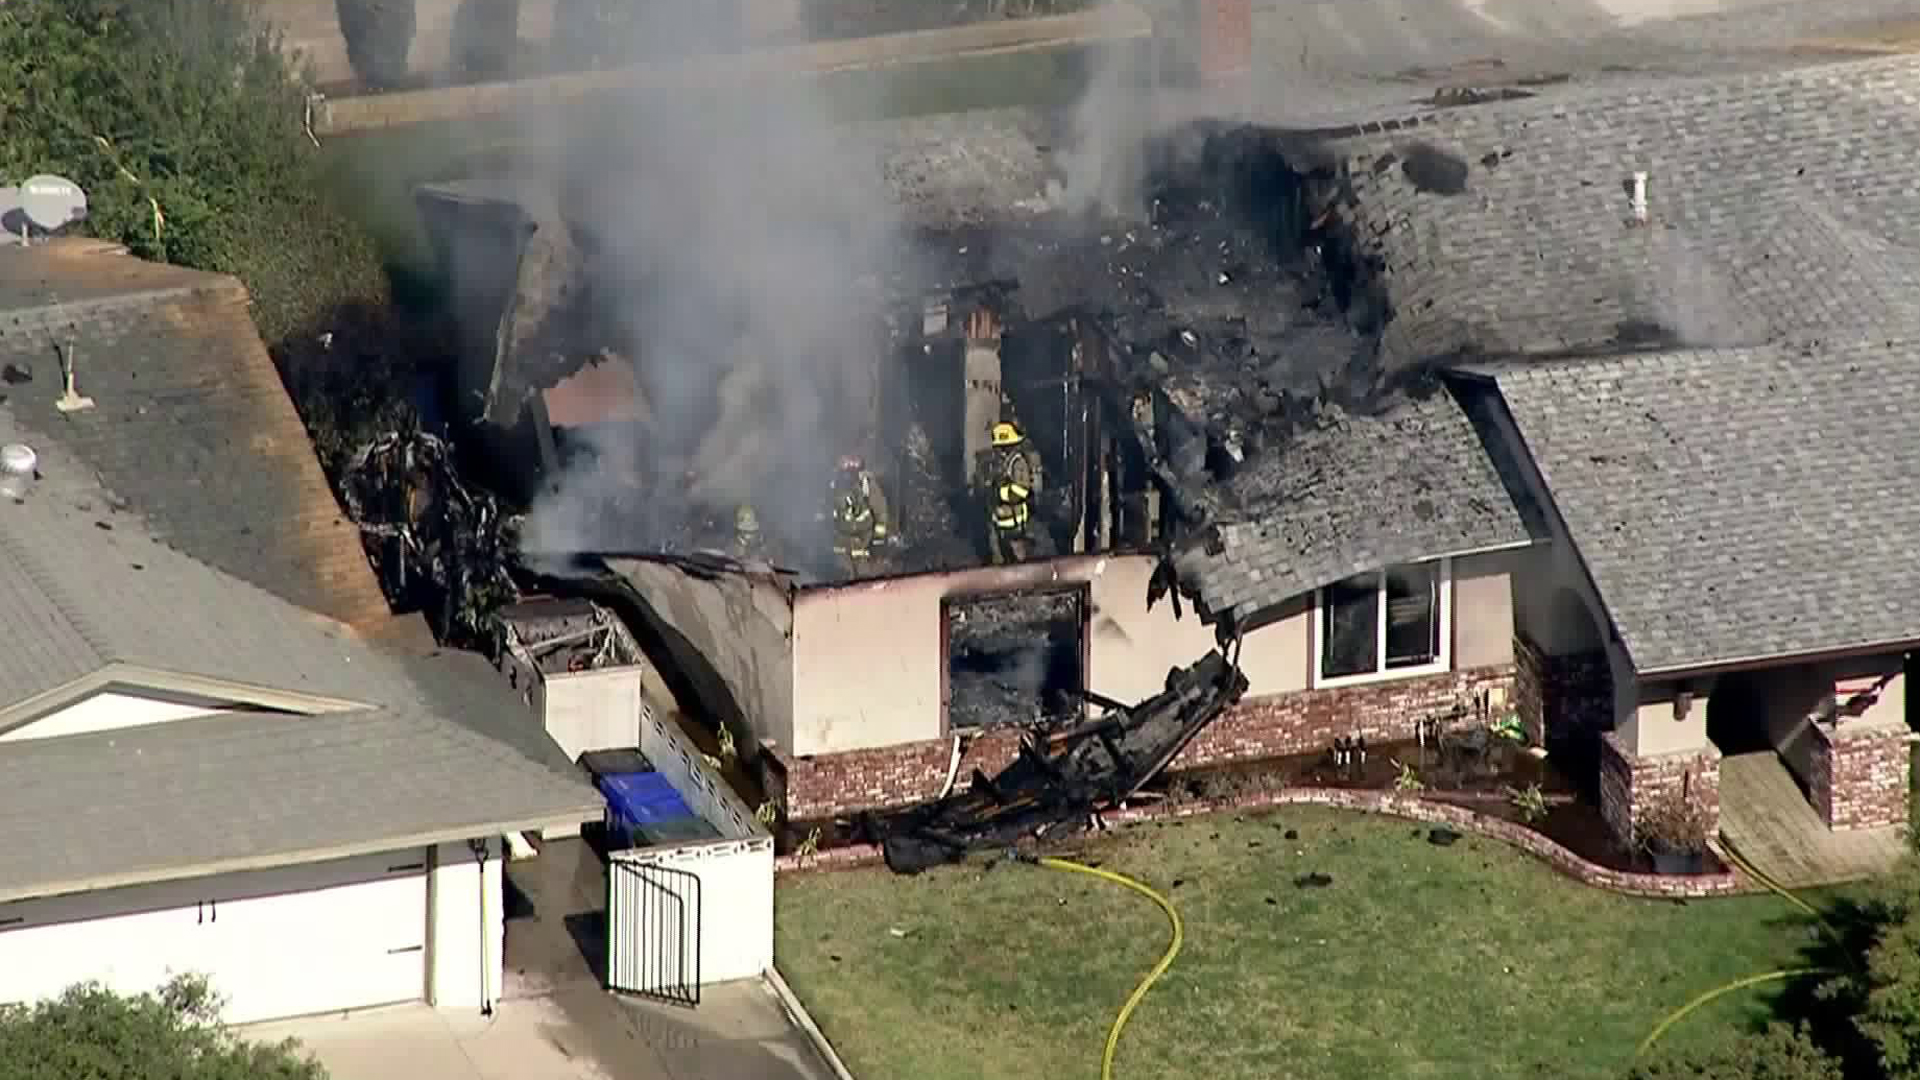 An Upland home was gutted after plane crashed into it and caught fire on Nov. 7, 2019. (Credit: KTLA)